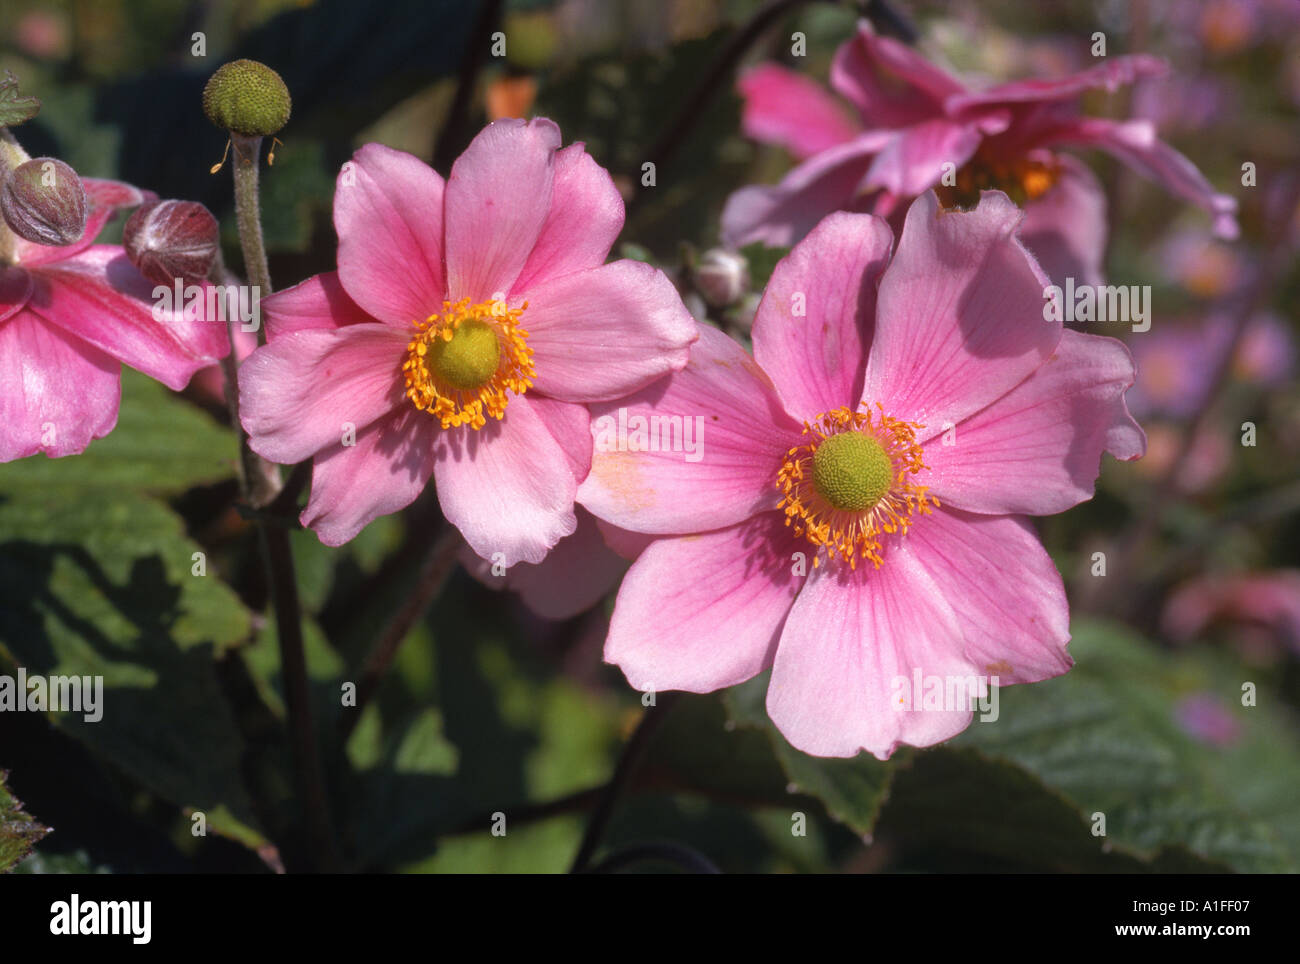 Pink flowers of the japanese anemone anemone japonica taken in stock pink flowers of the japanese anemone anemone japonica taken in september in devon england m h black mightylinksfo